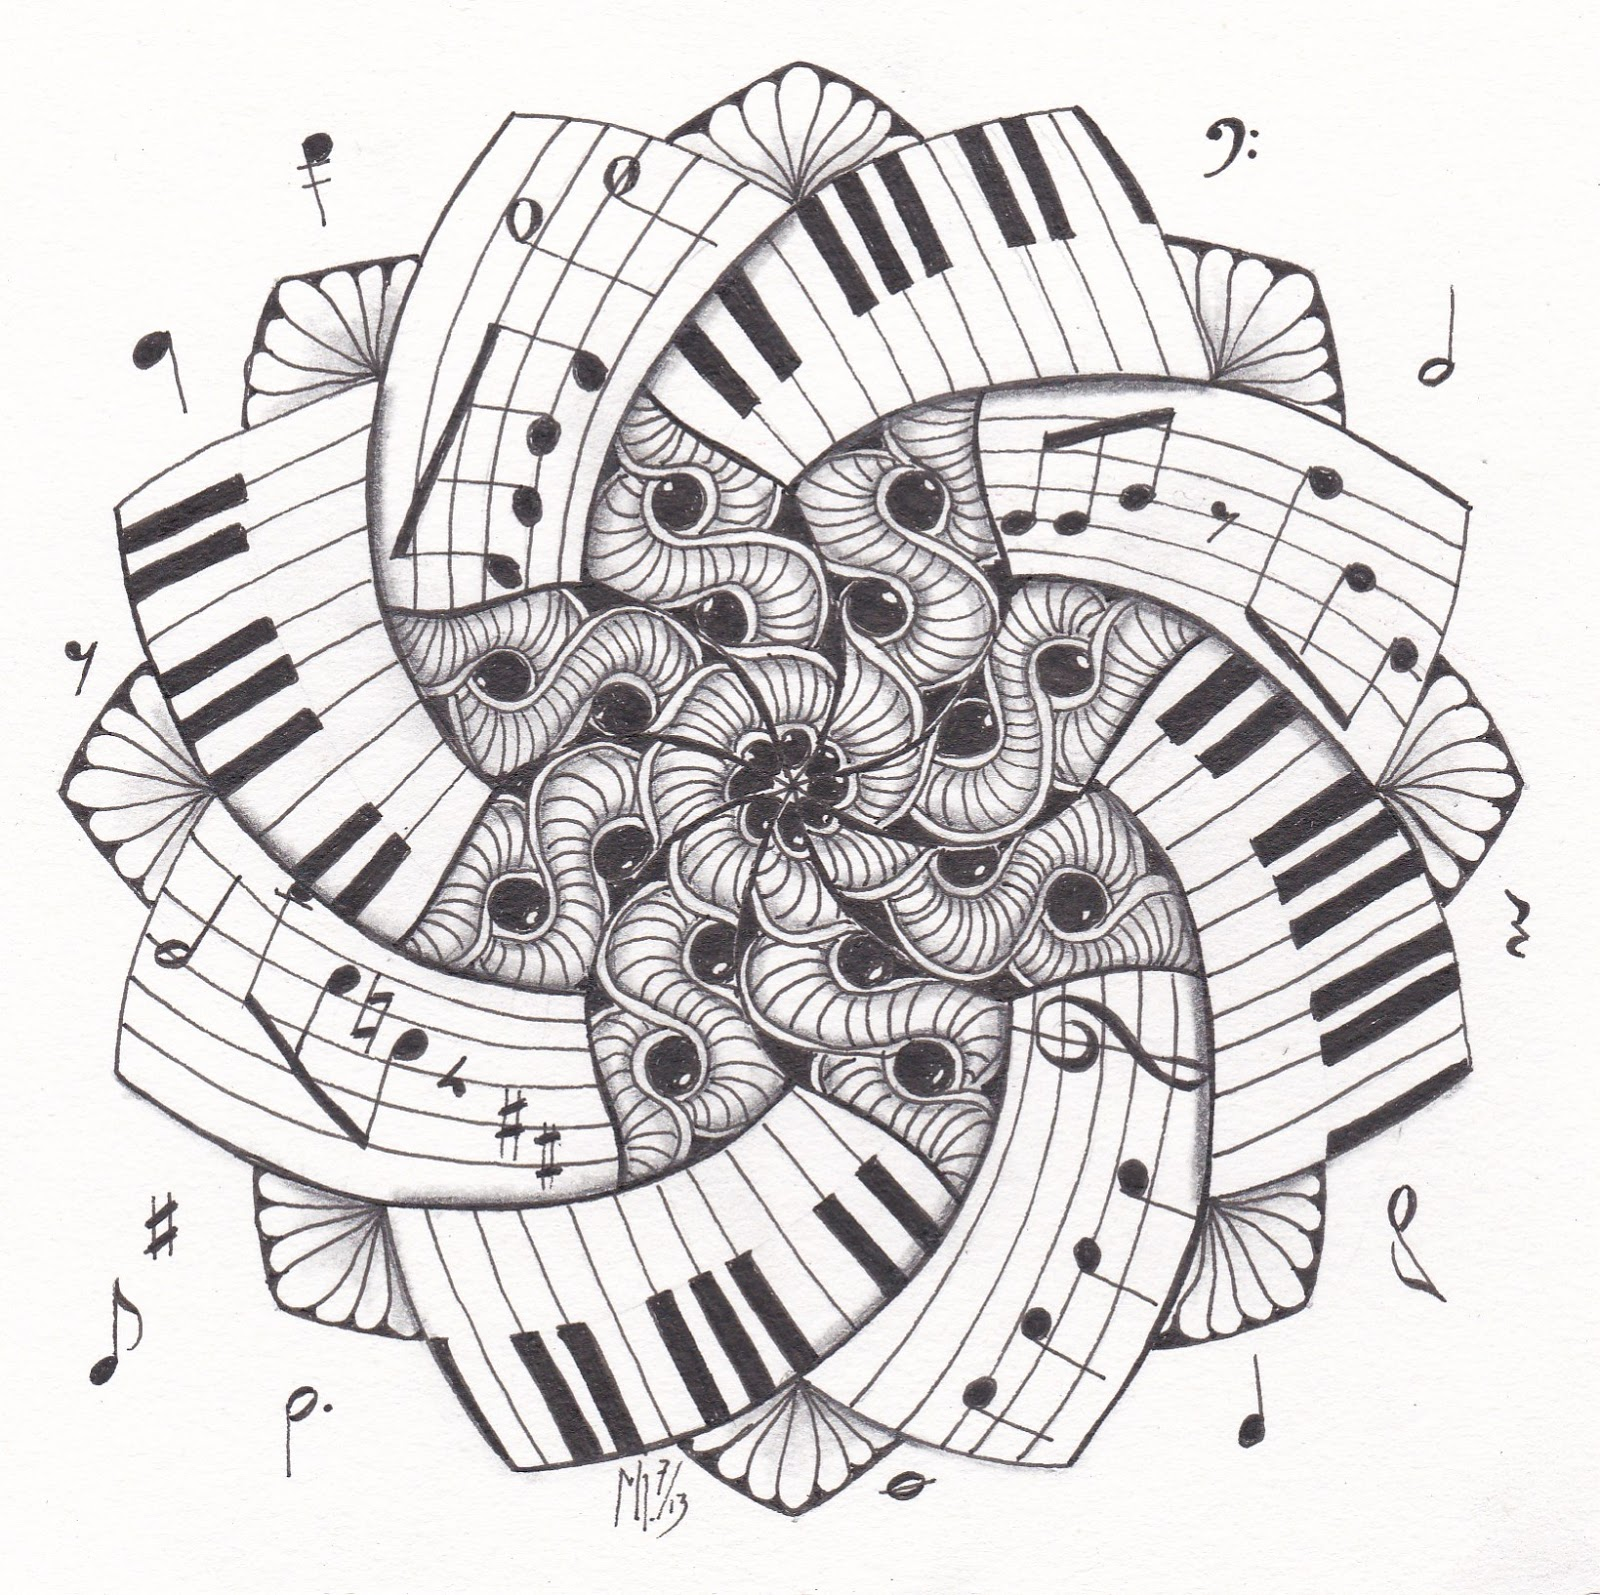 musical keyboard coloring pages - photo#34